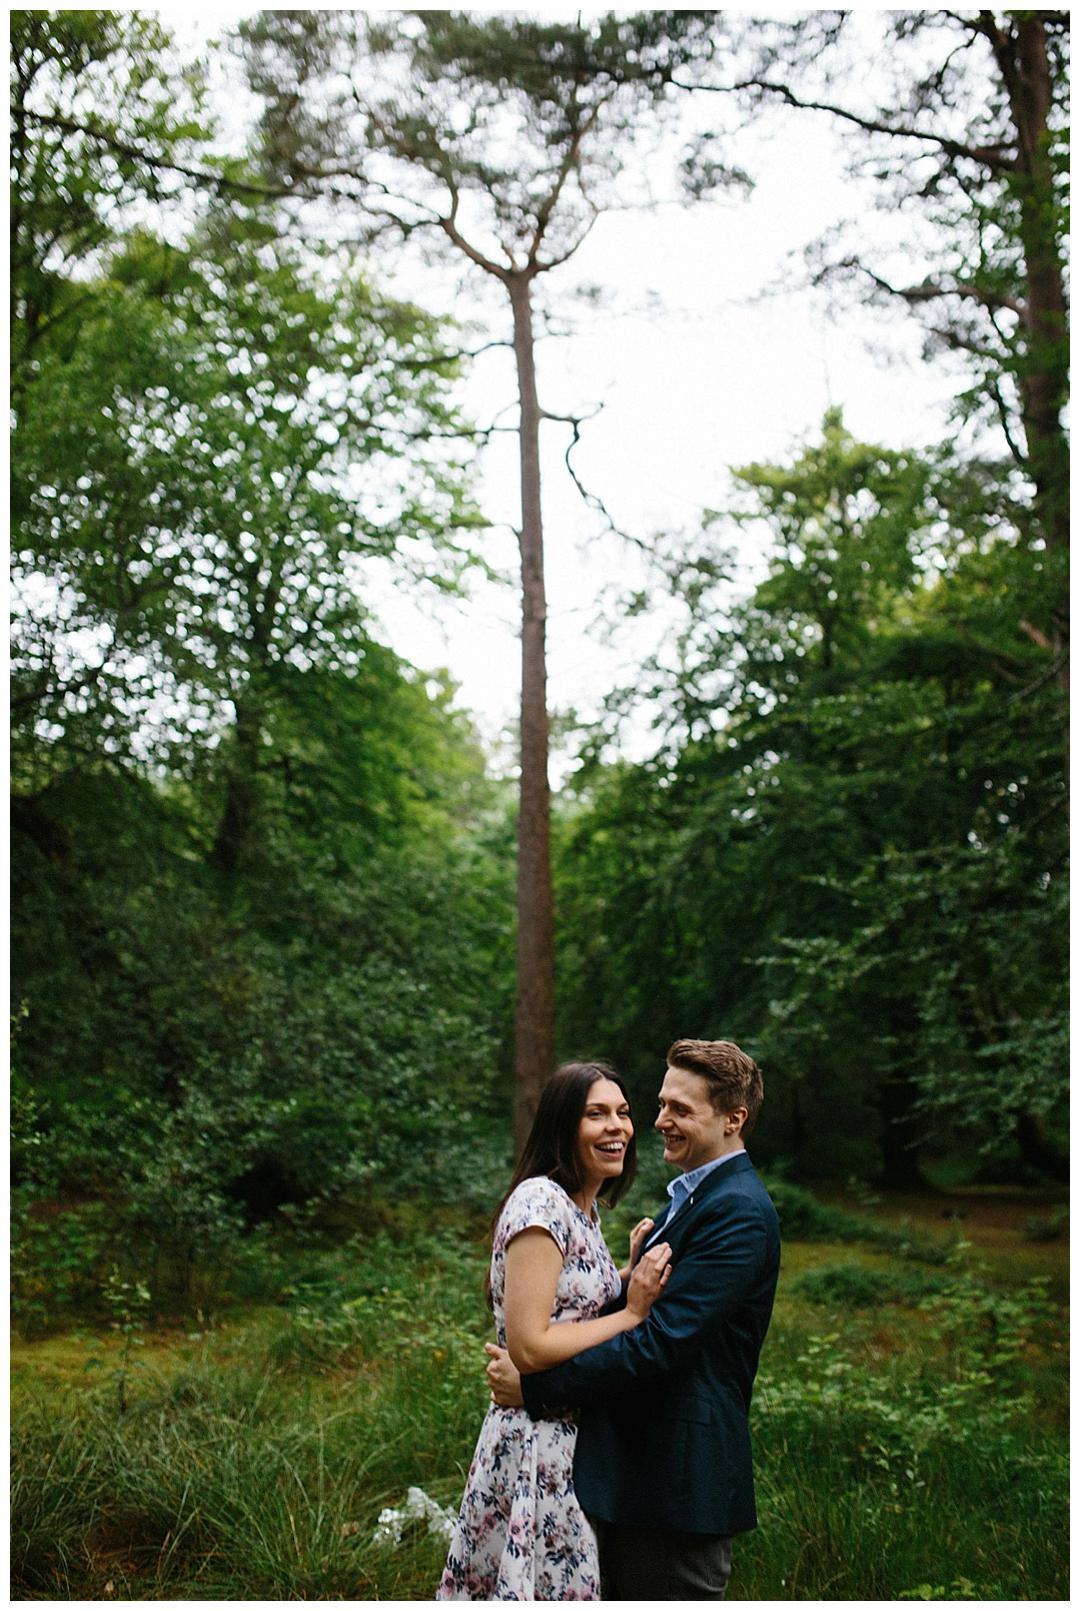 We_can _be_Heroes_alternative_wedding_photographer_Ireland_0045